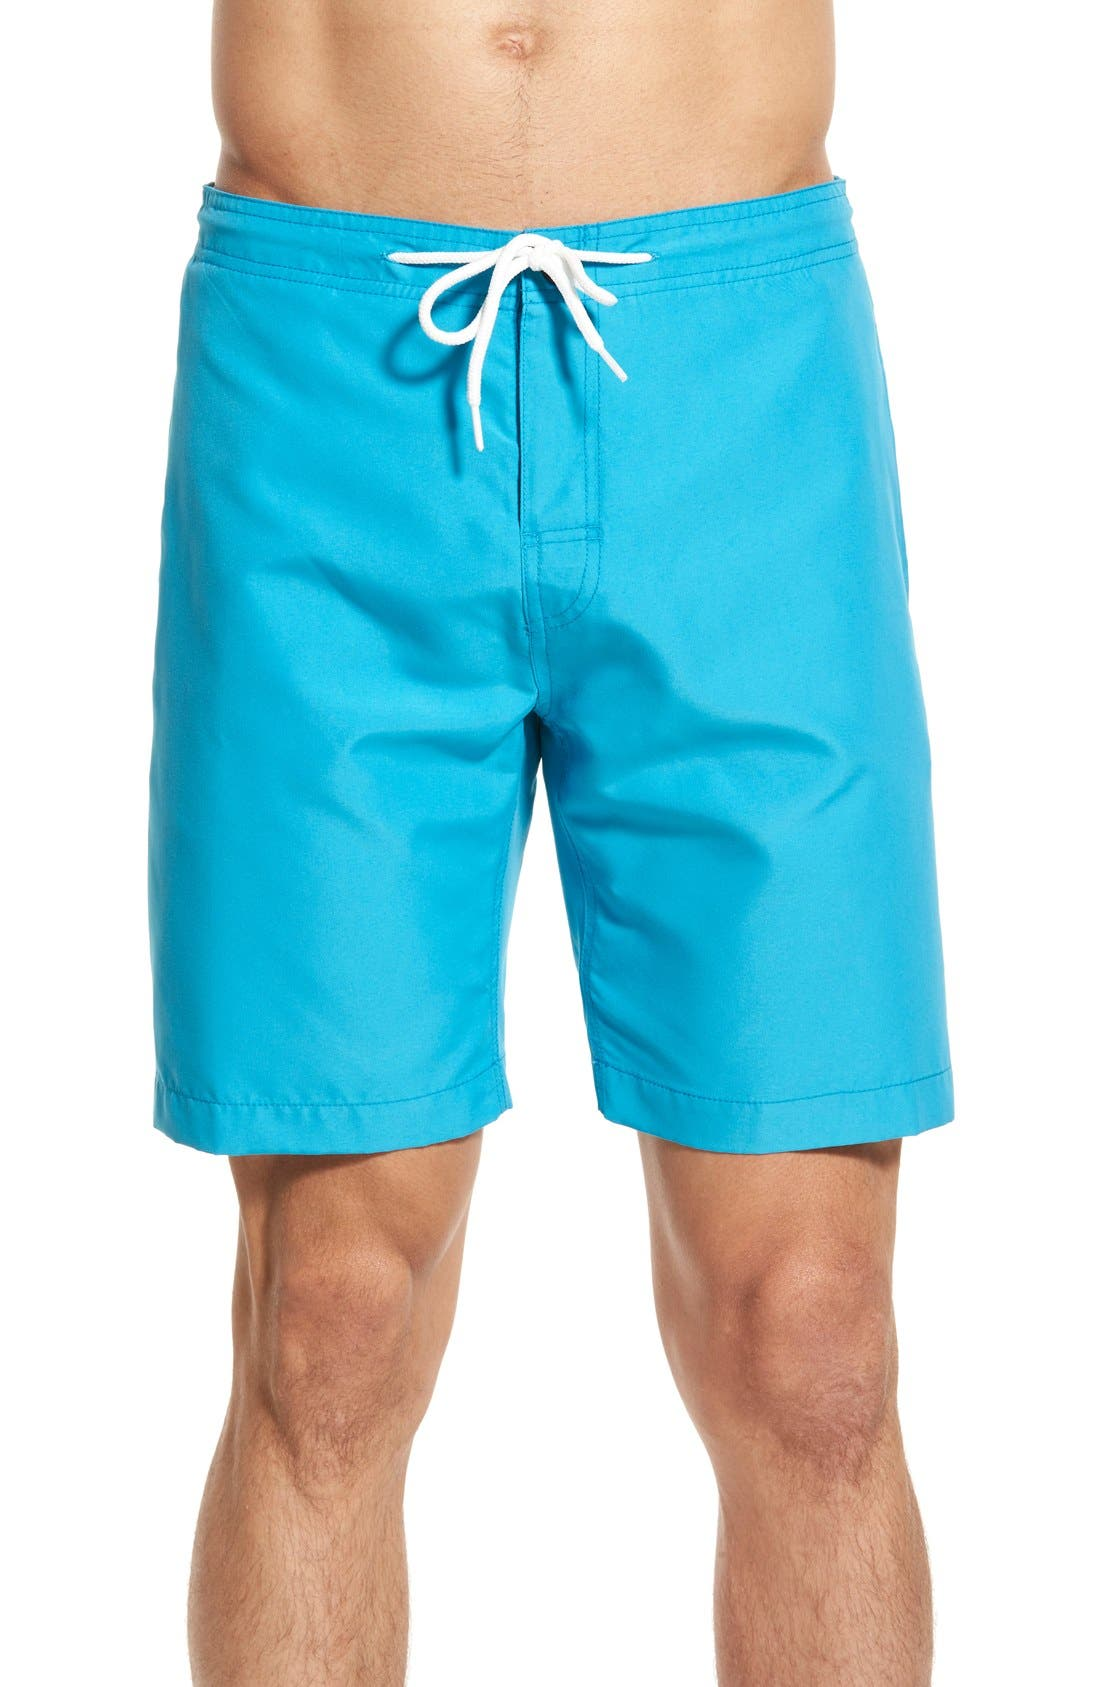 Alternate Image 1 Selected - Trunks Surf & Swim Co. Board Shorts